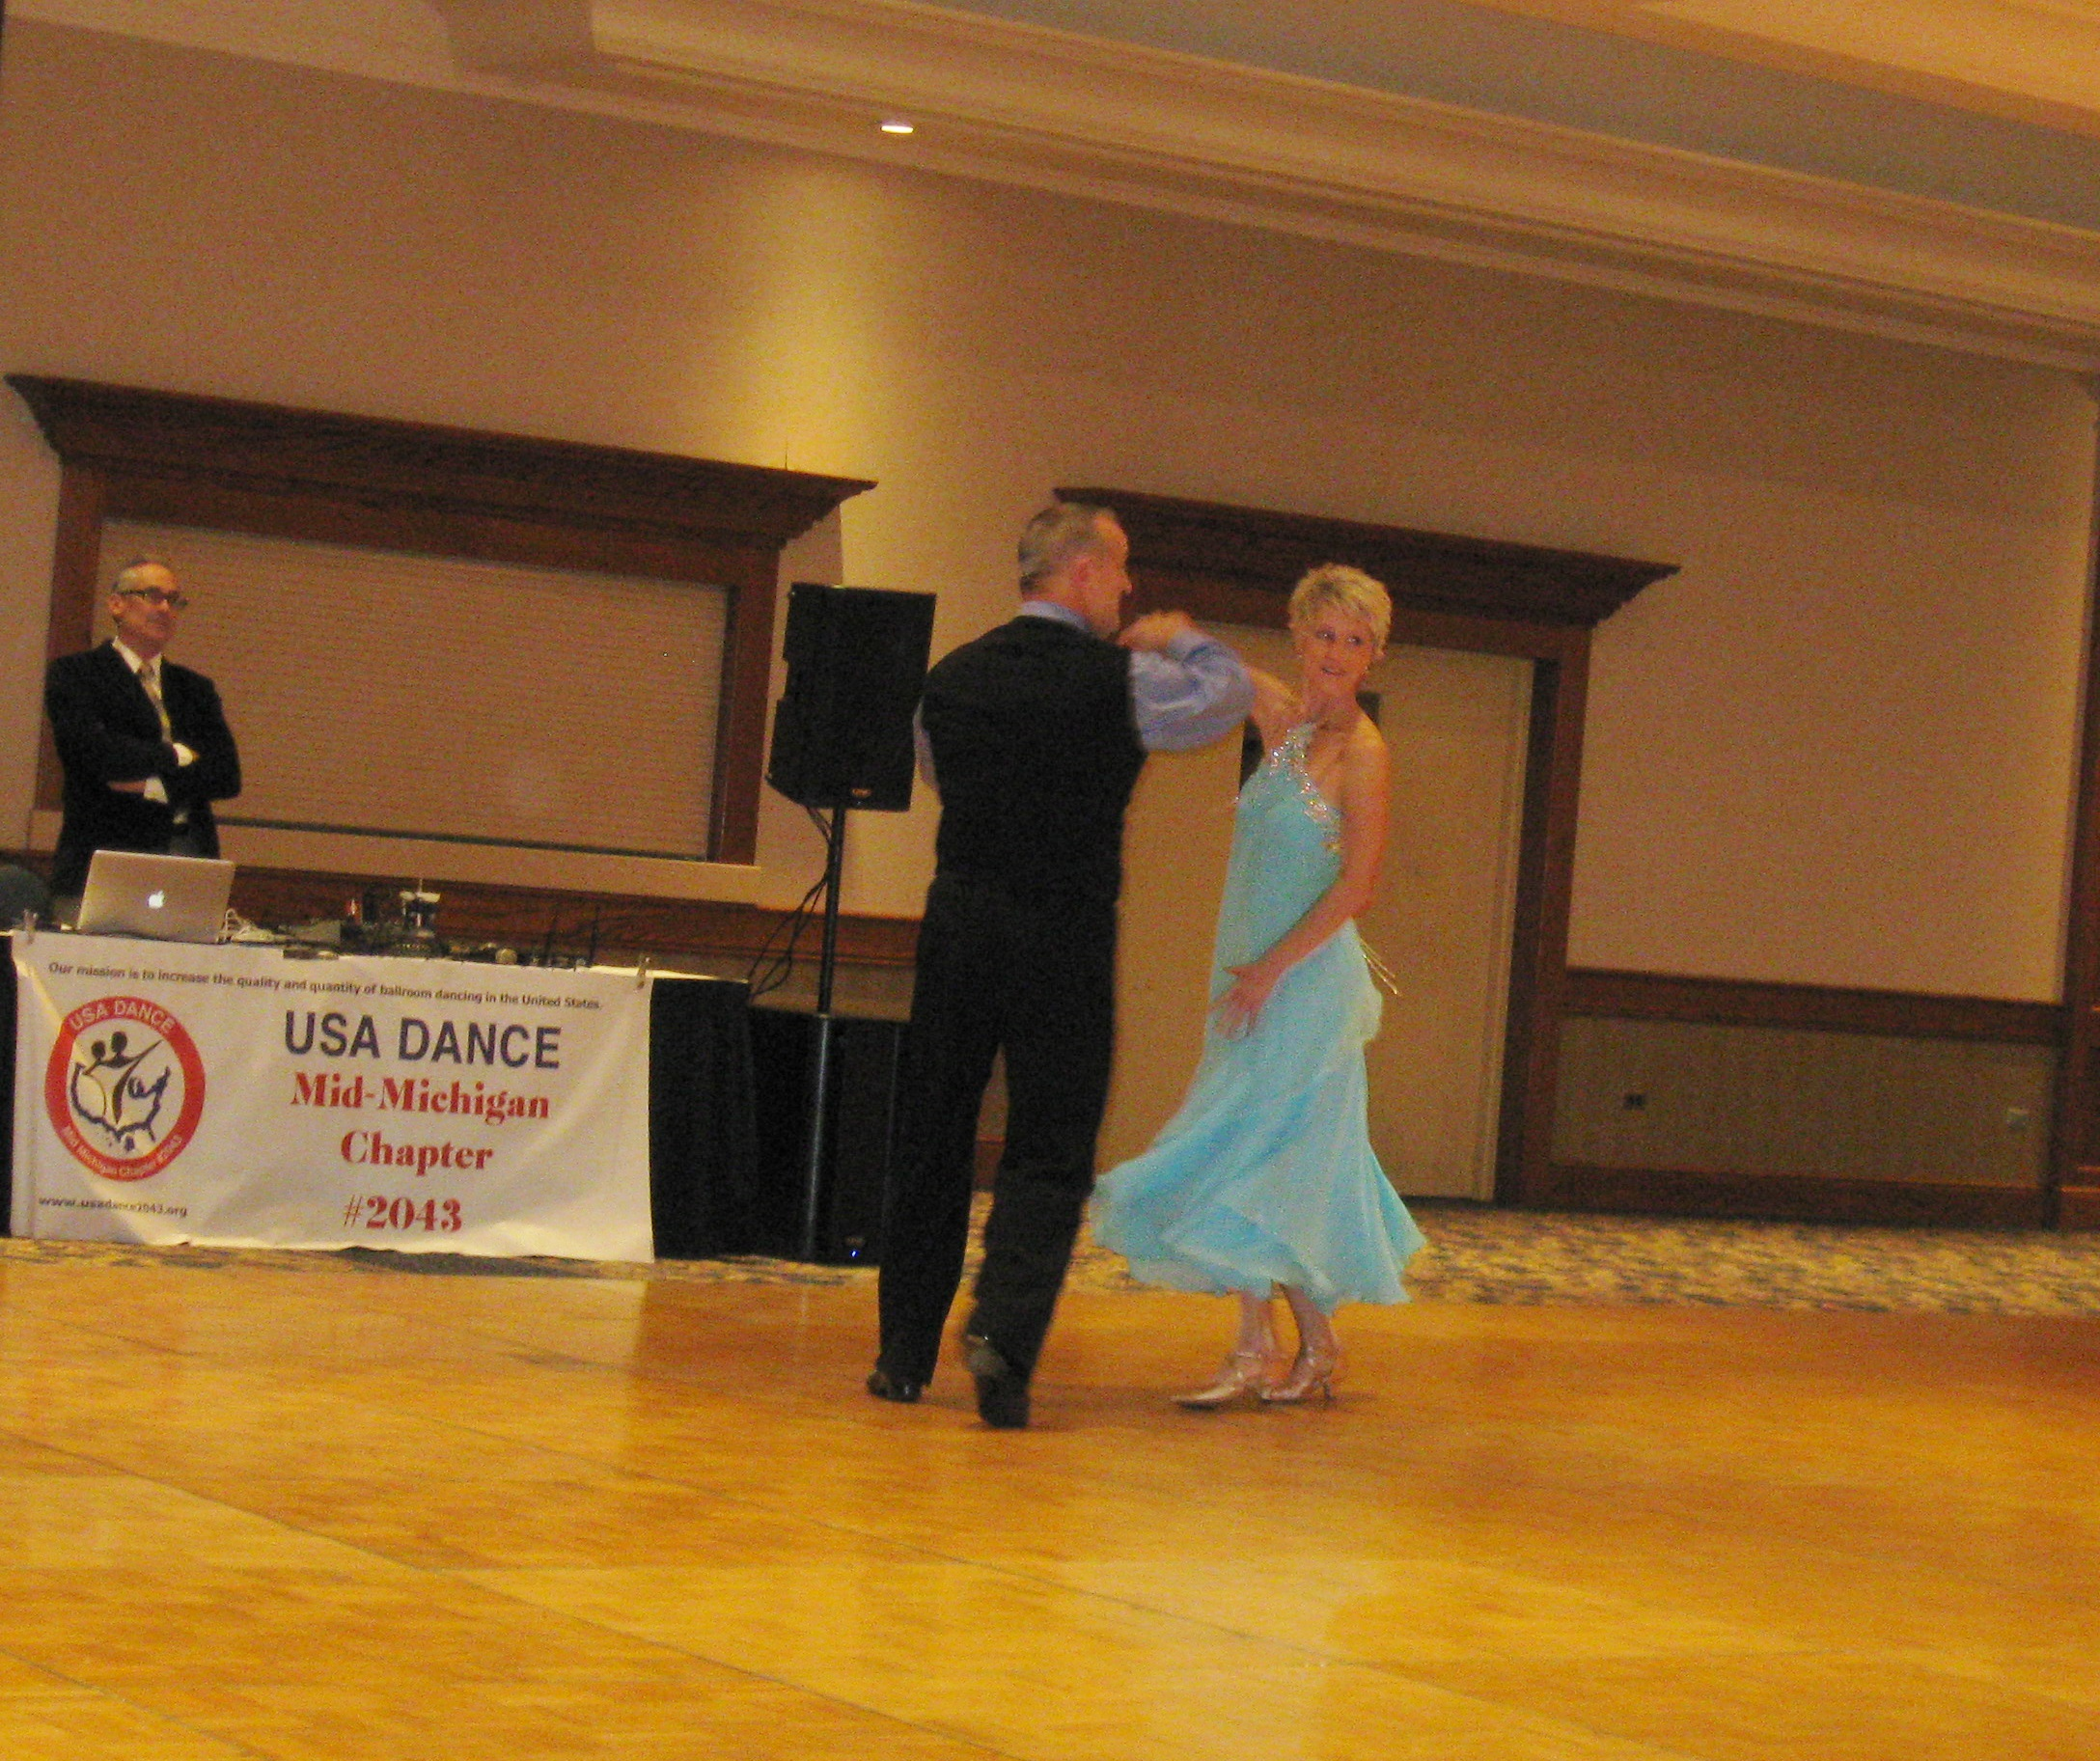 Steve and Kendra Reynolds waltz routine